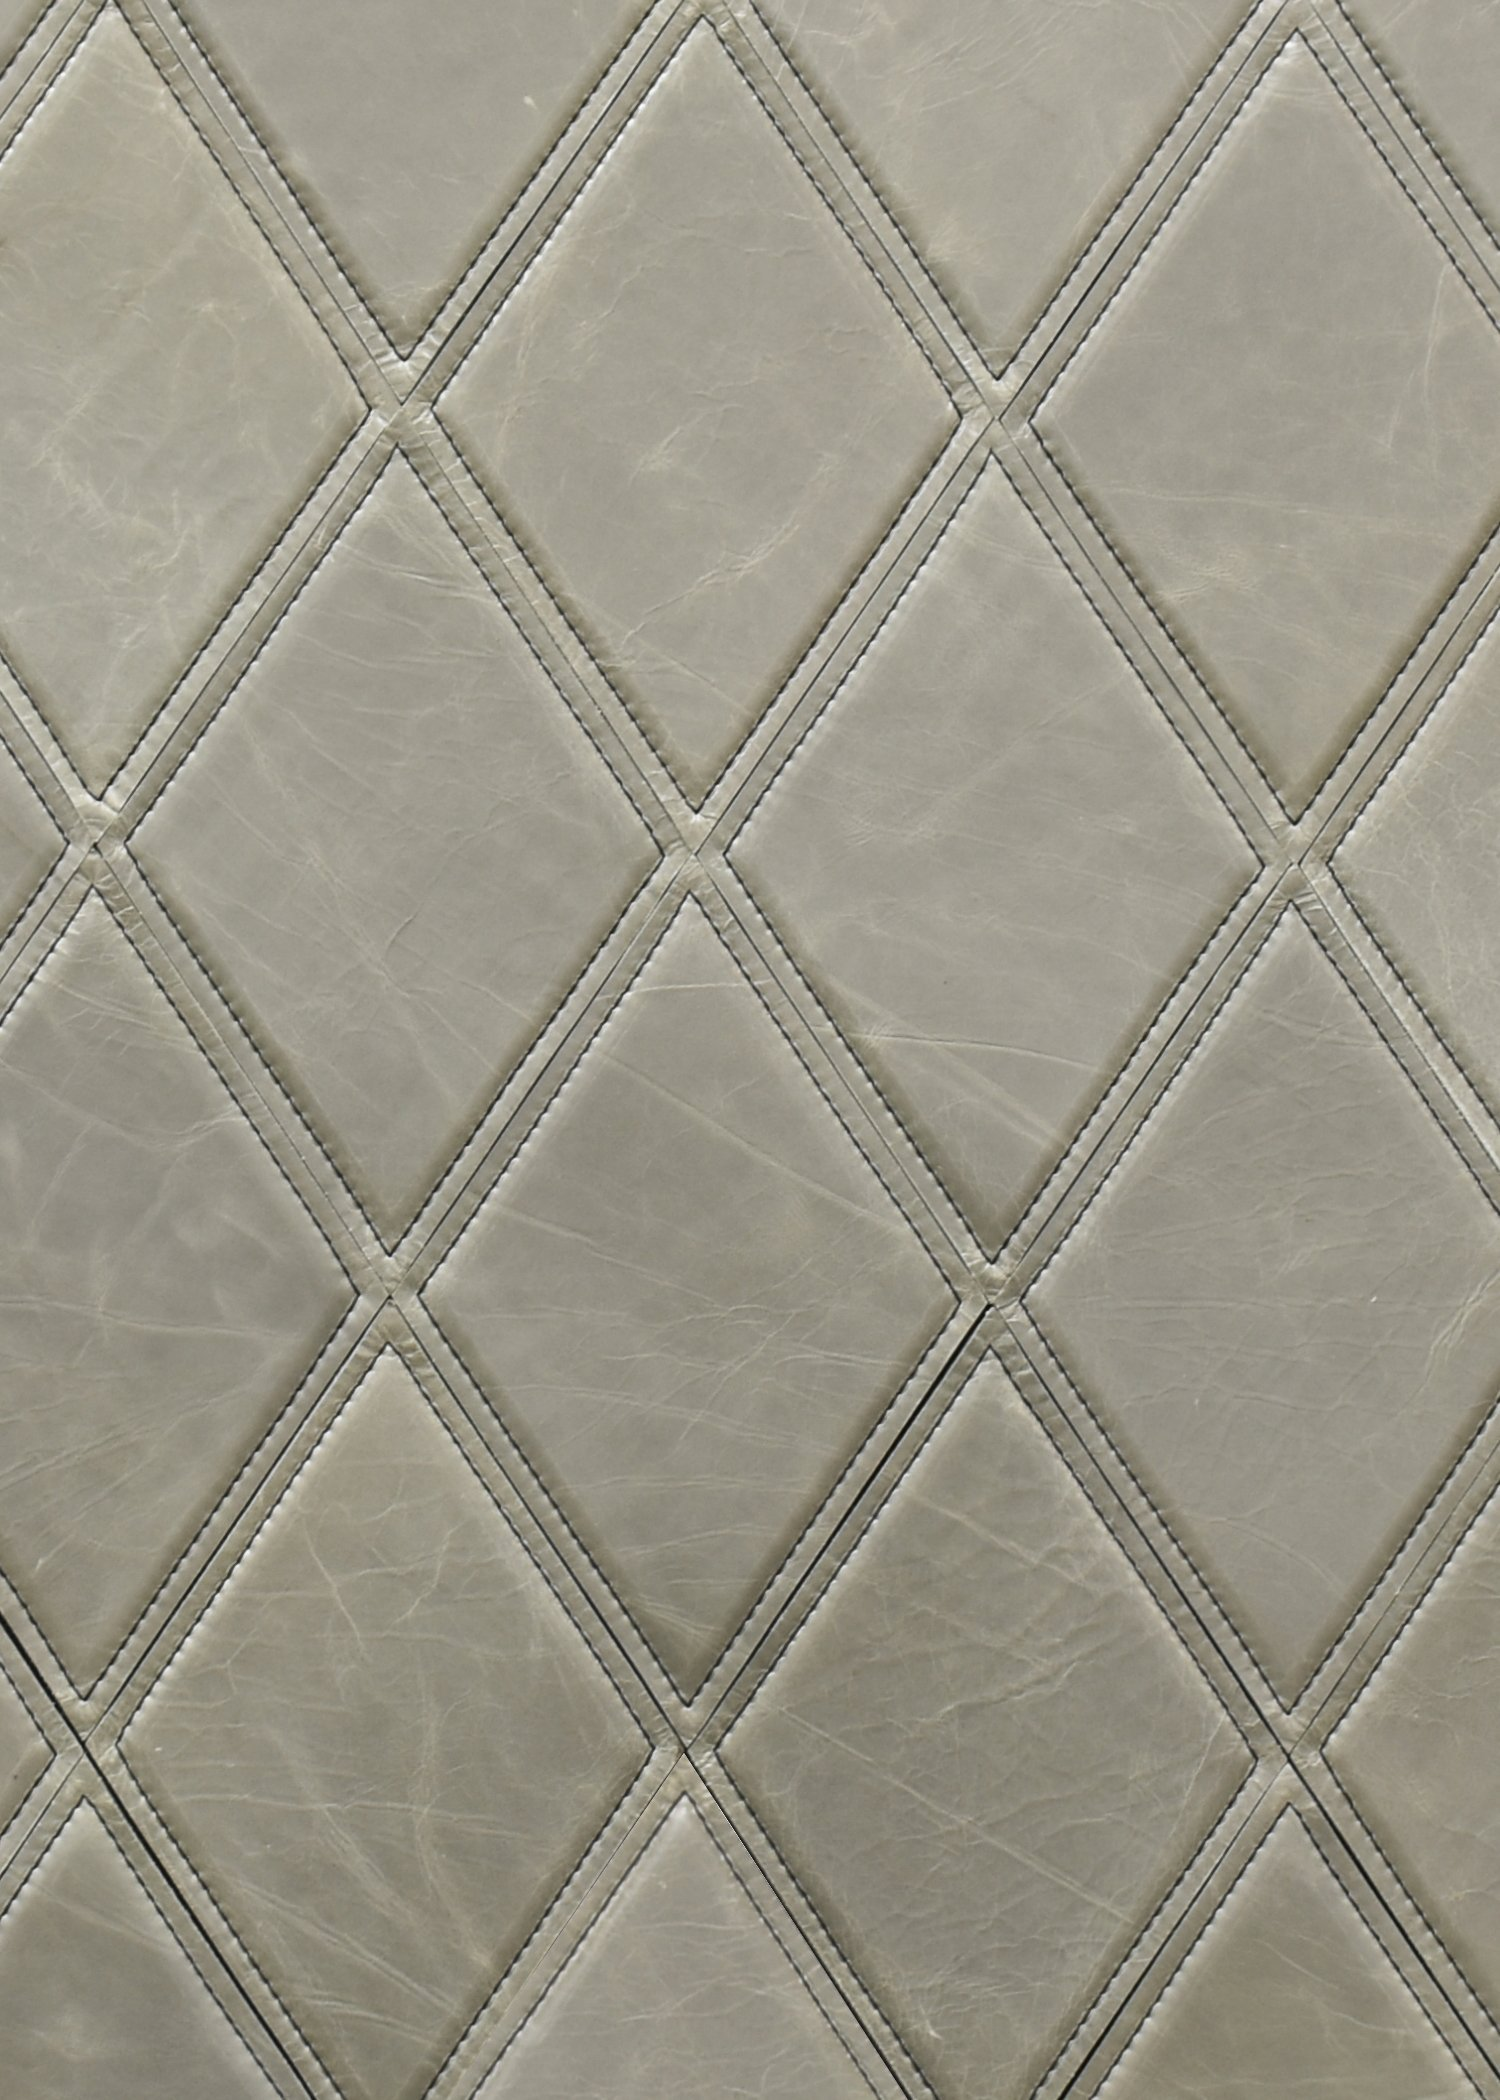 Leather Wall Tiles & Leather Floor Tiles | Keleen Leathers, Inc.